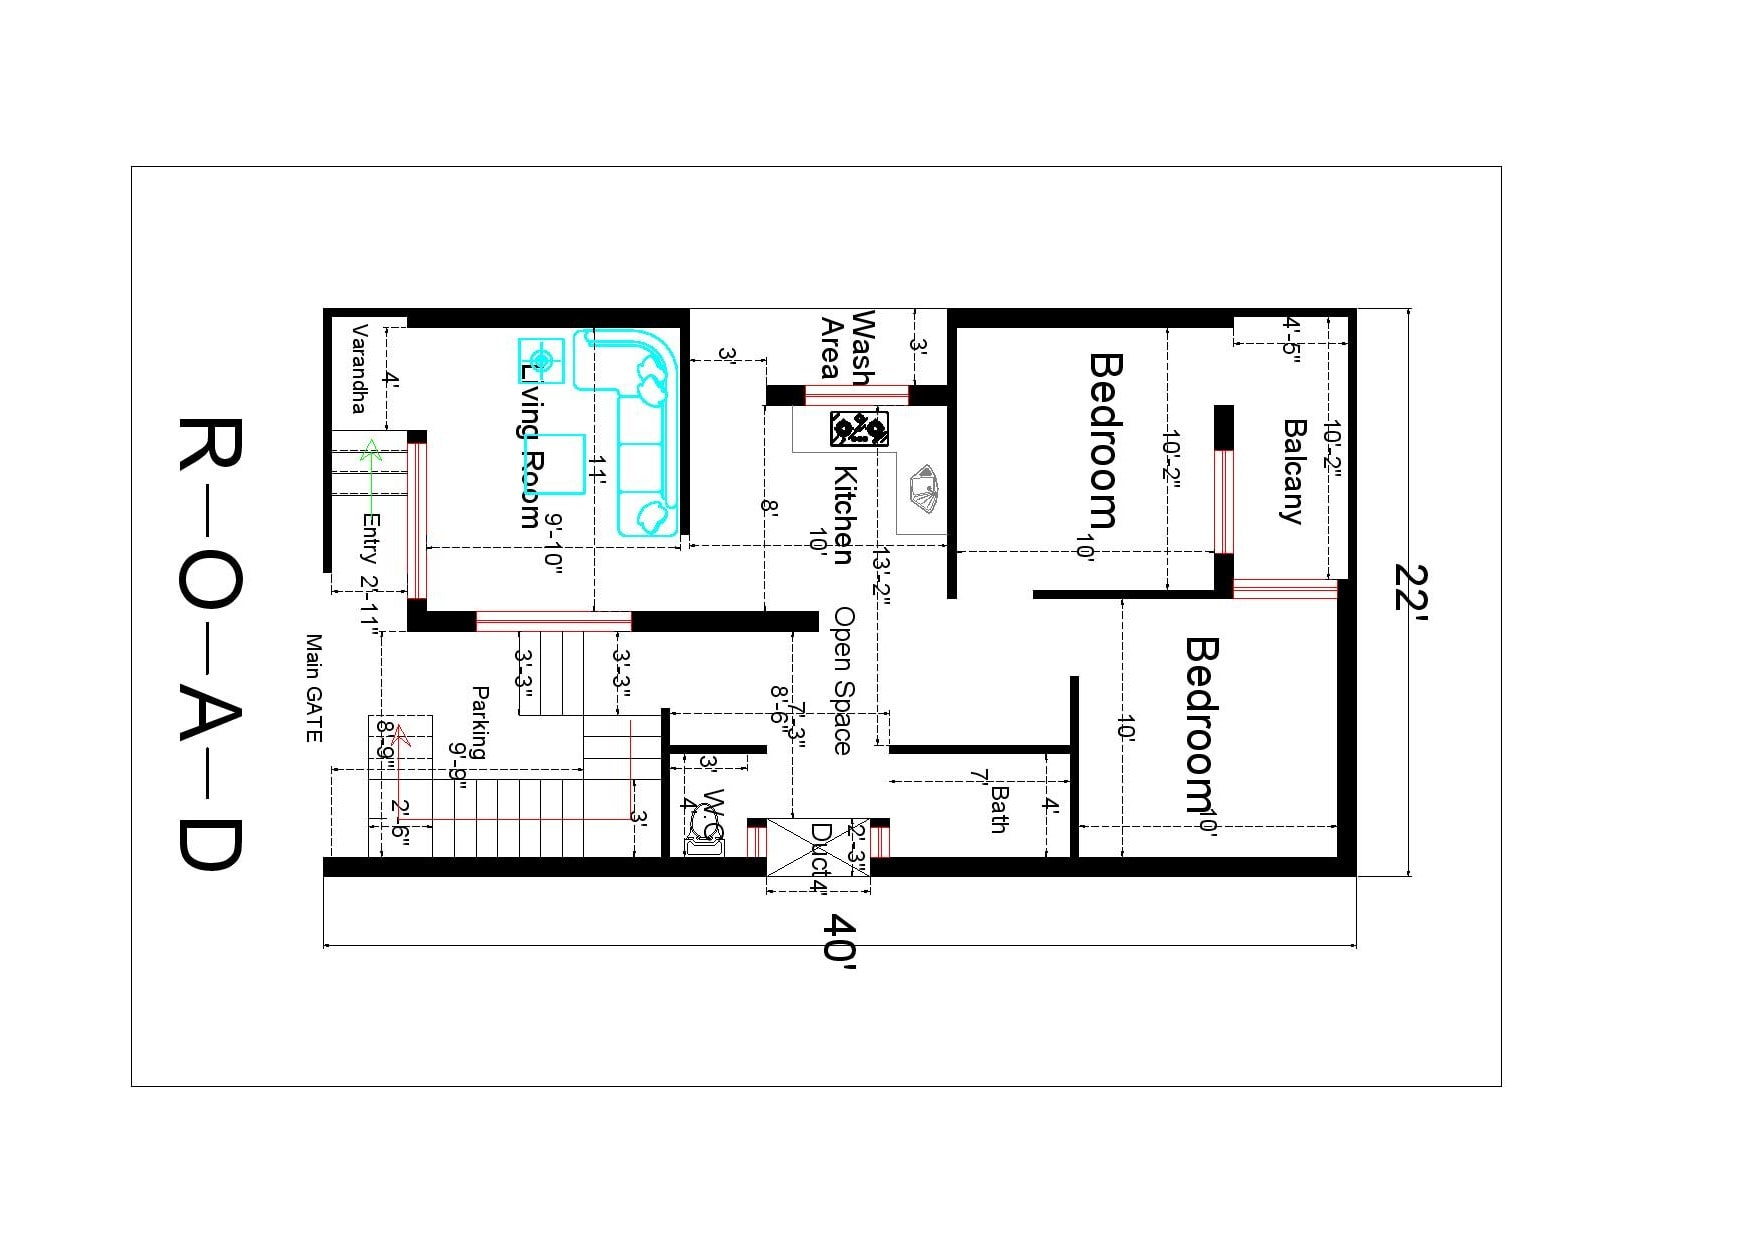 I will draw a floor plan in autocad